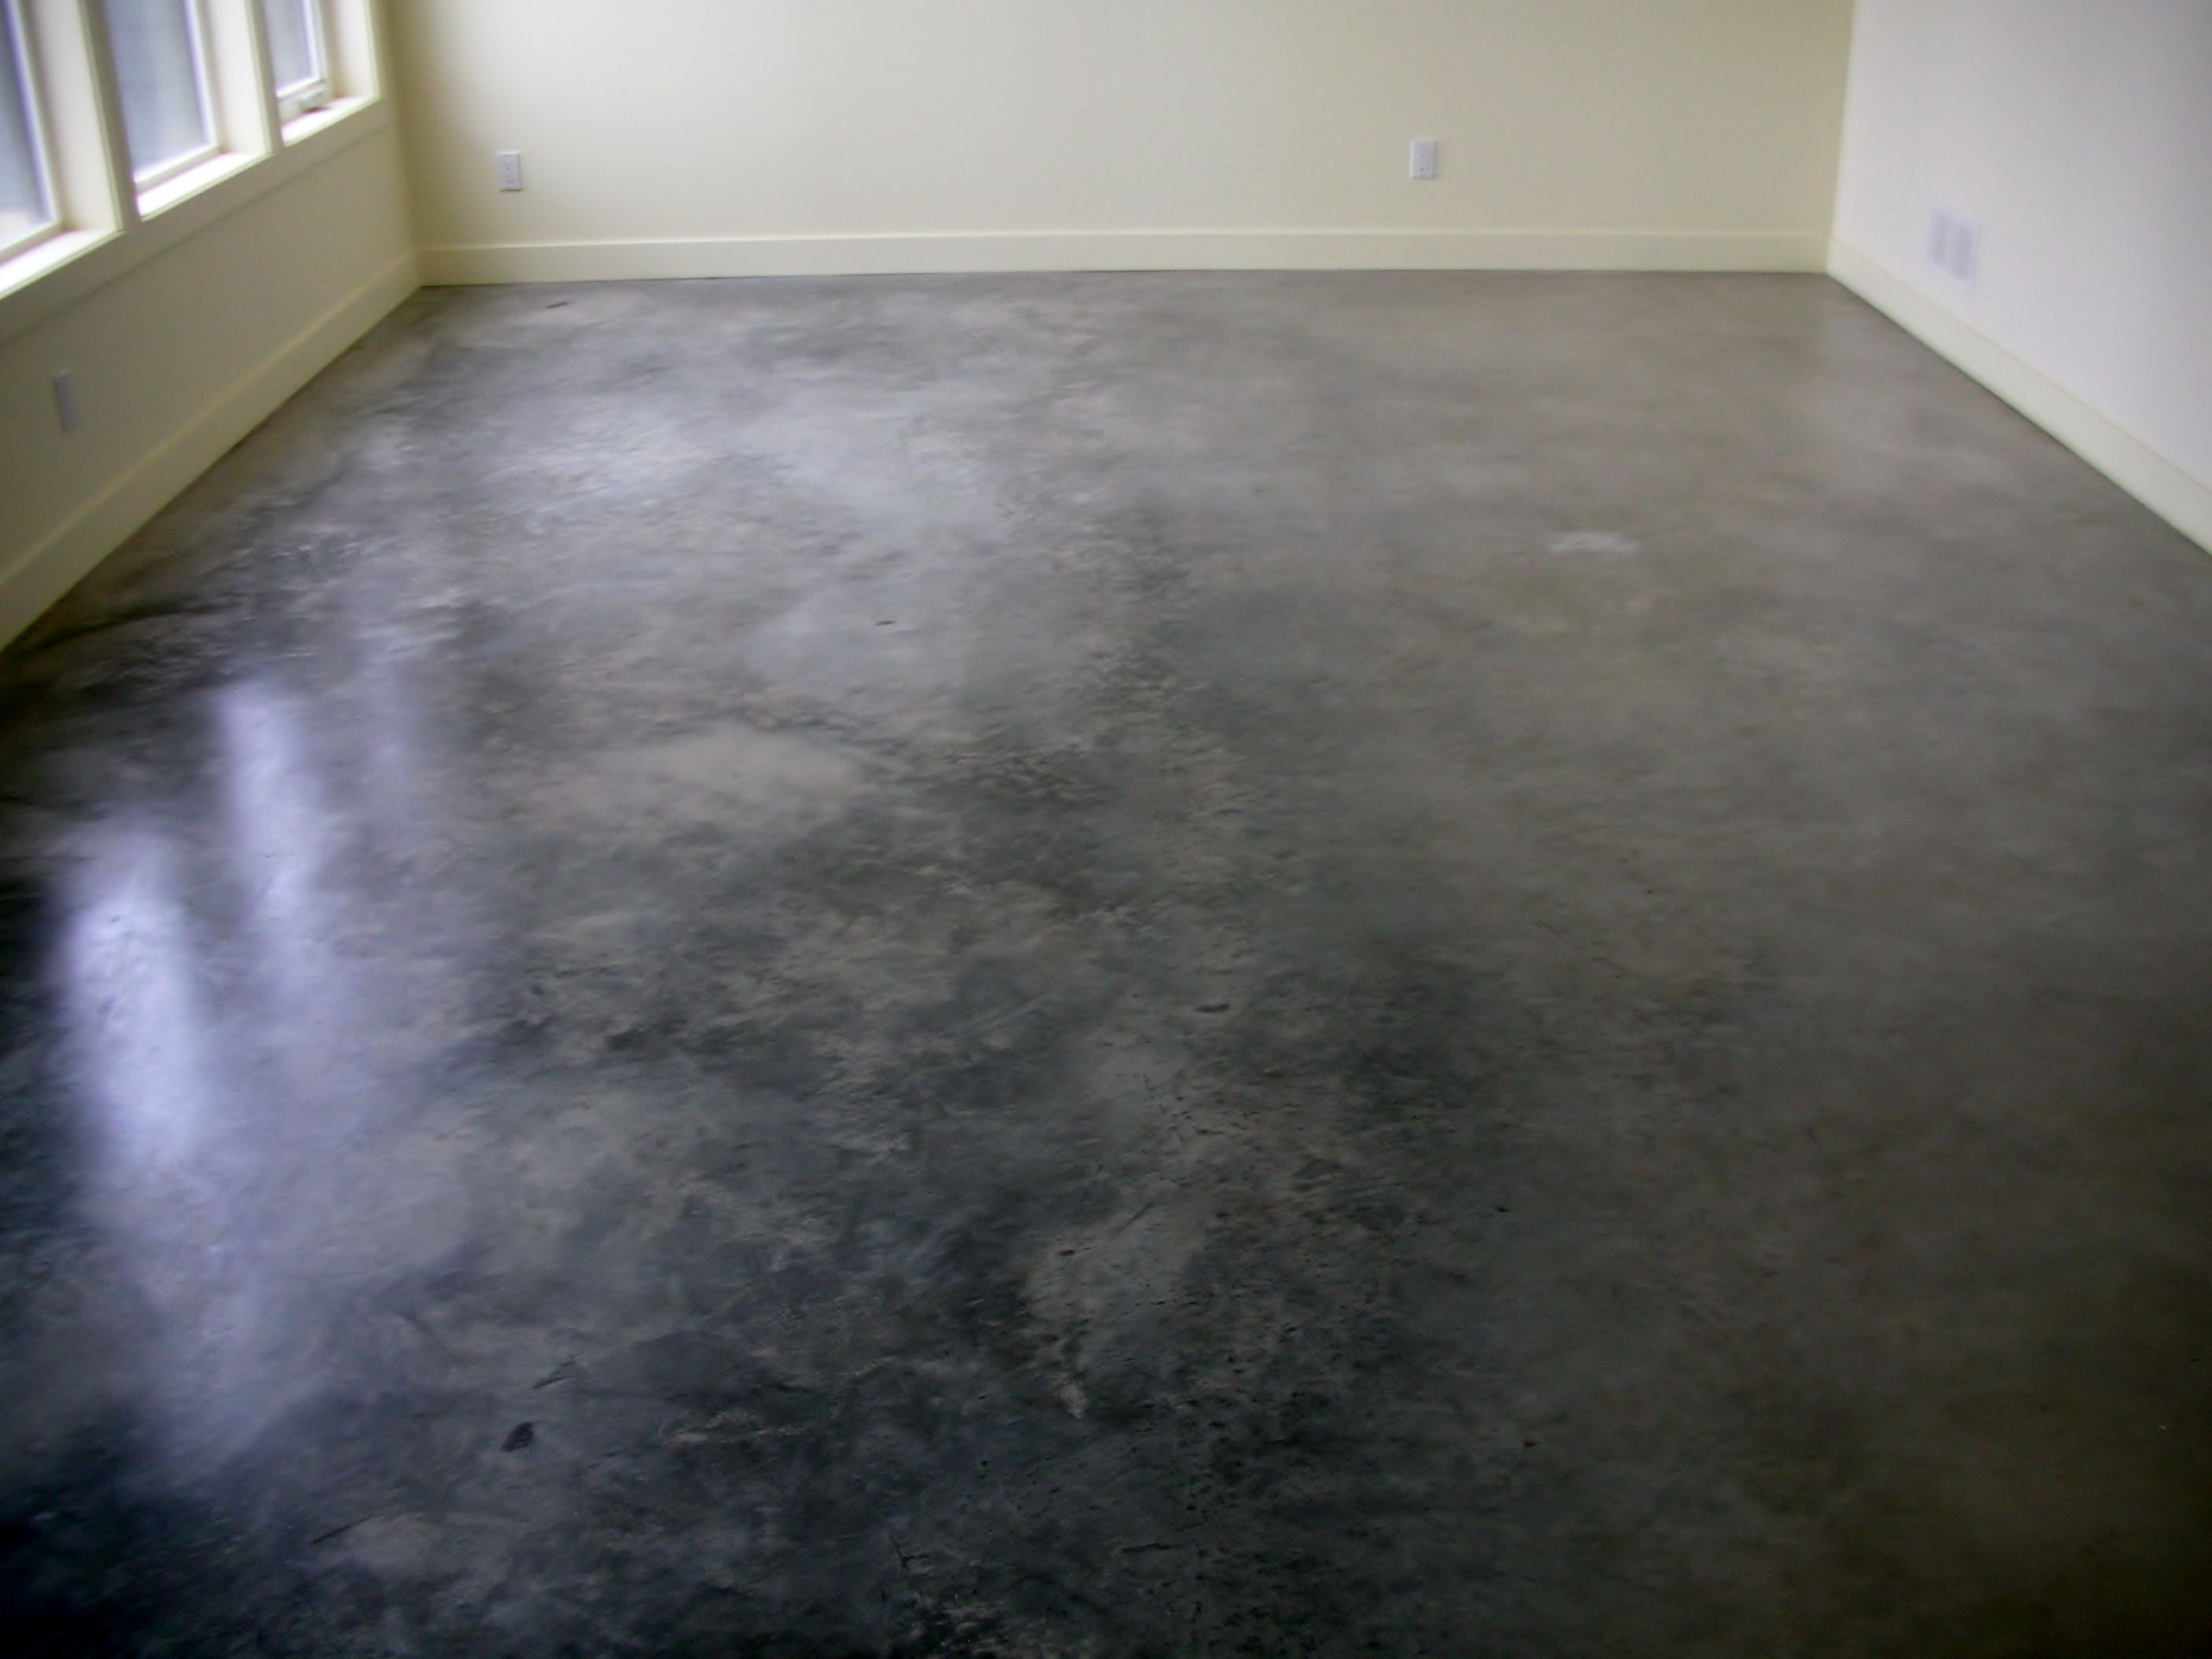 WE DONT WANT SHINEY BUT THIS IS A COOL BLACK/WORN LOOKING CONCRETE FLOOR